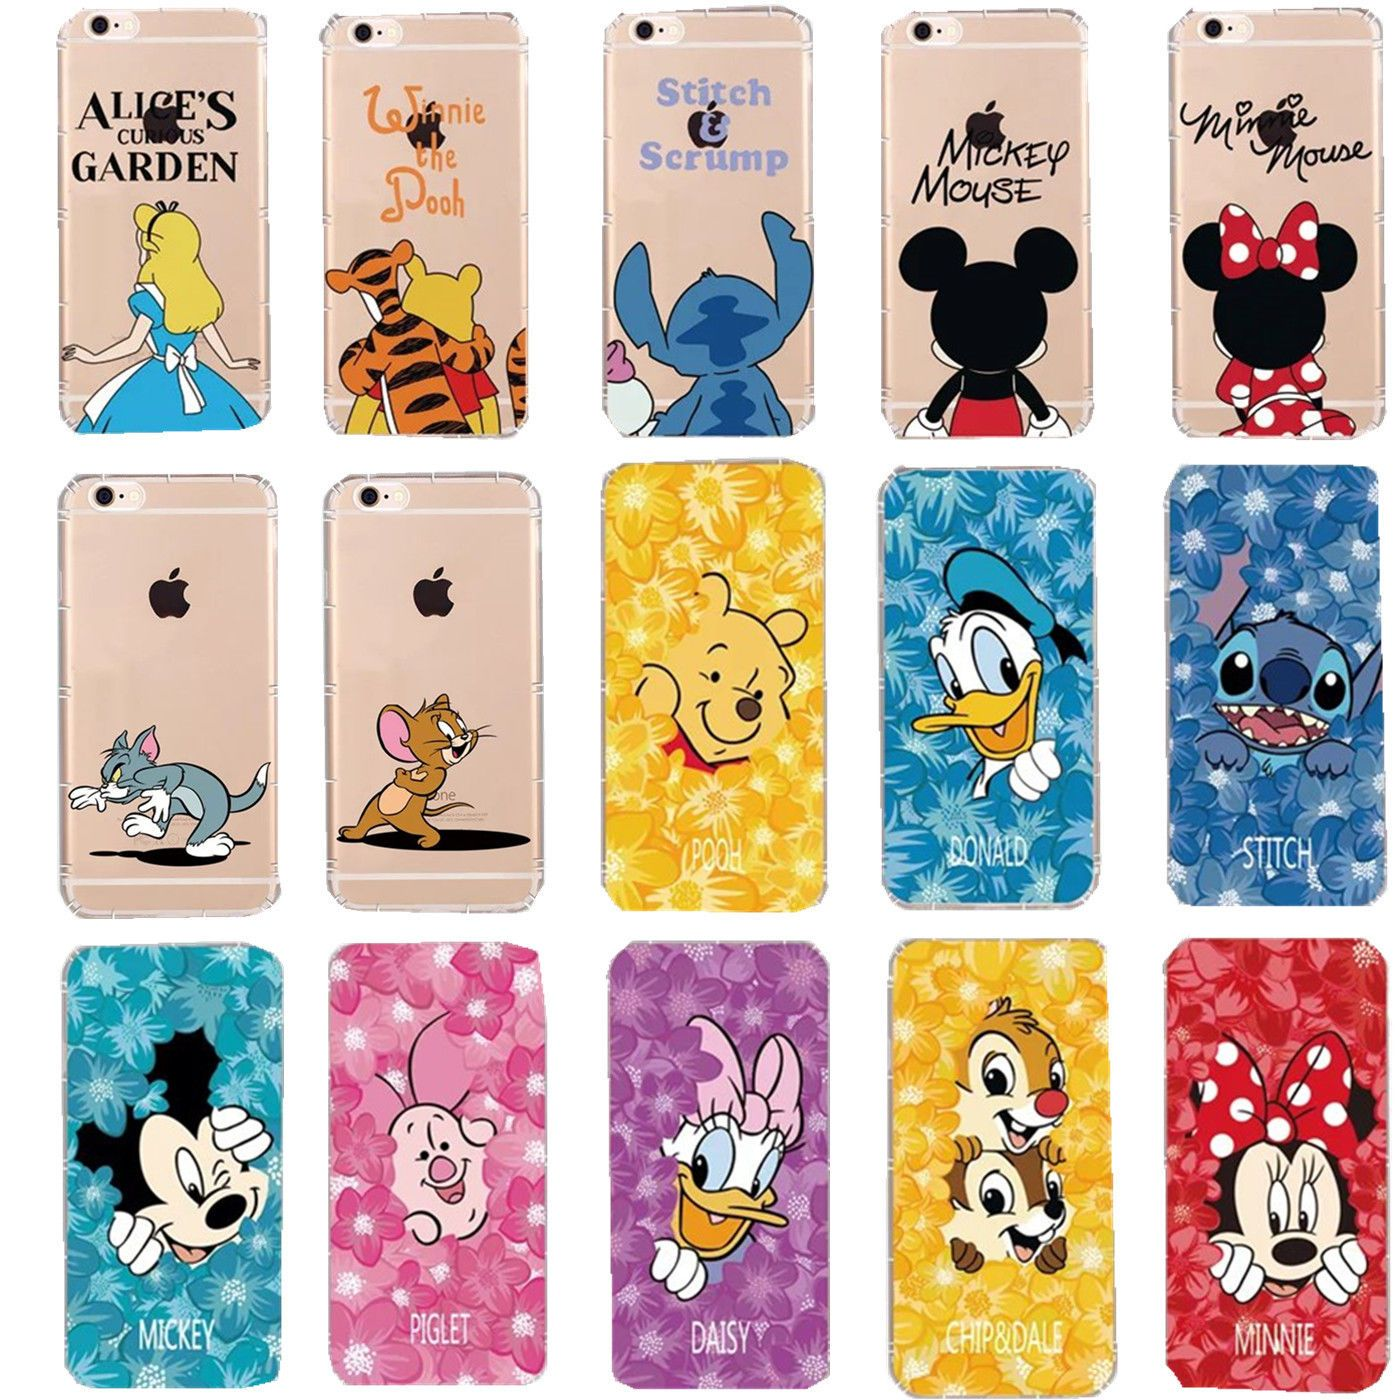 largest disney silicone case iphone